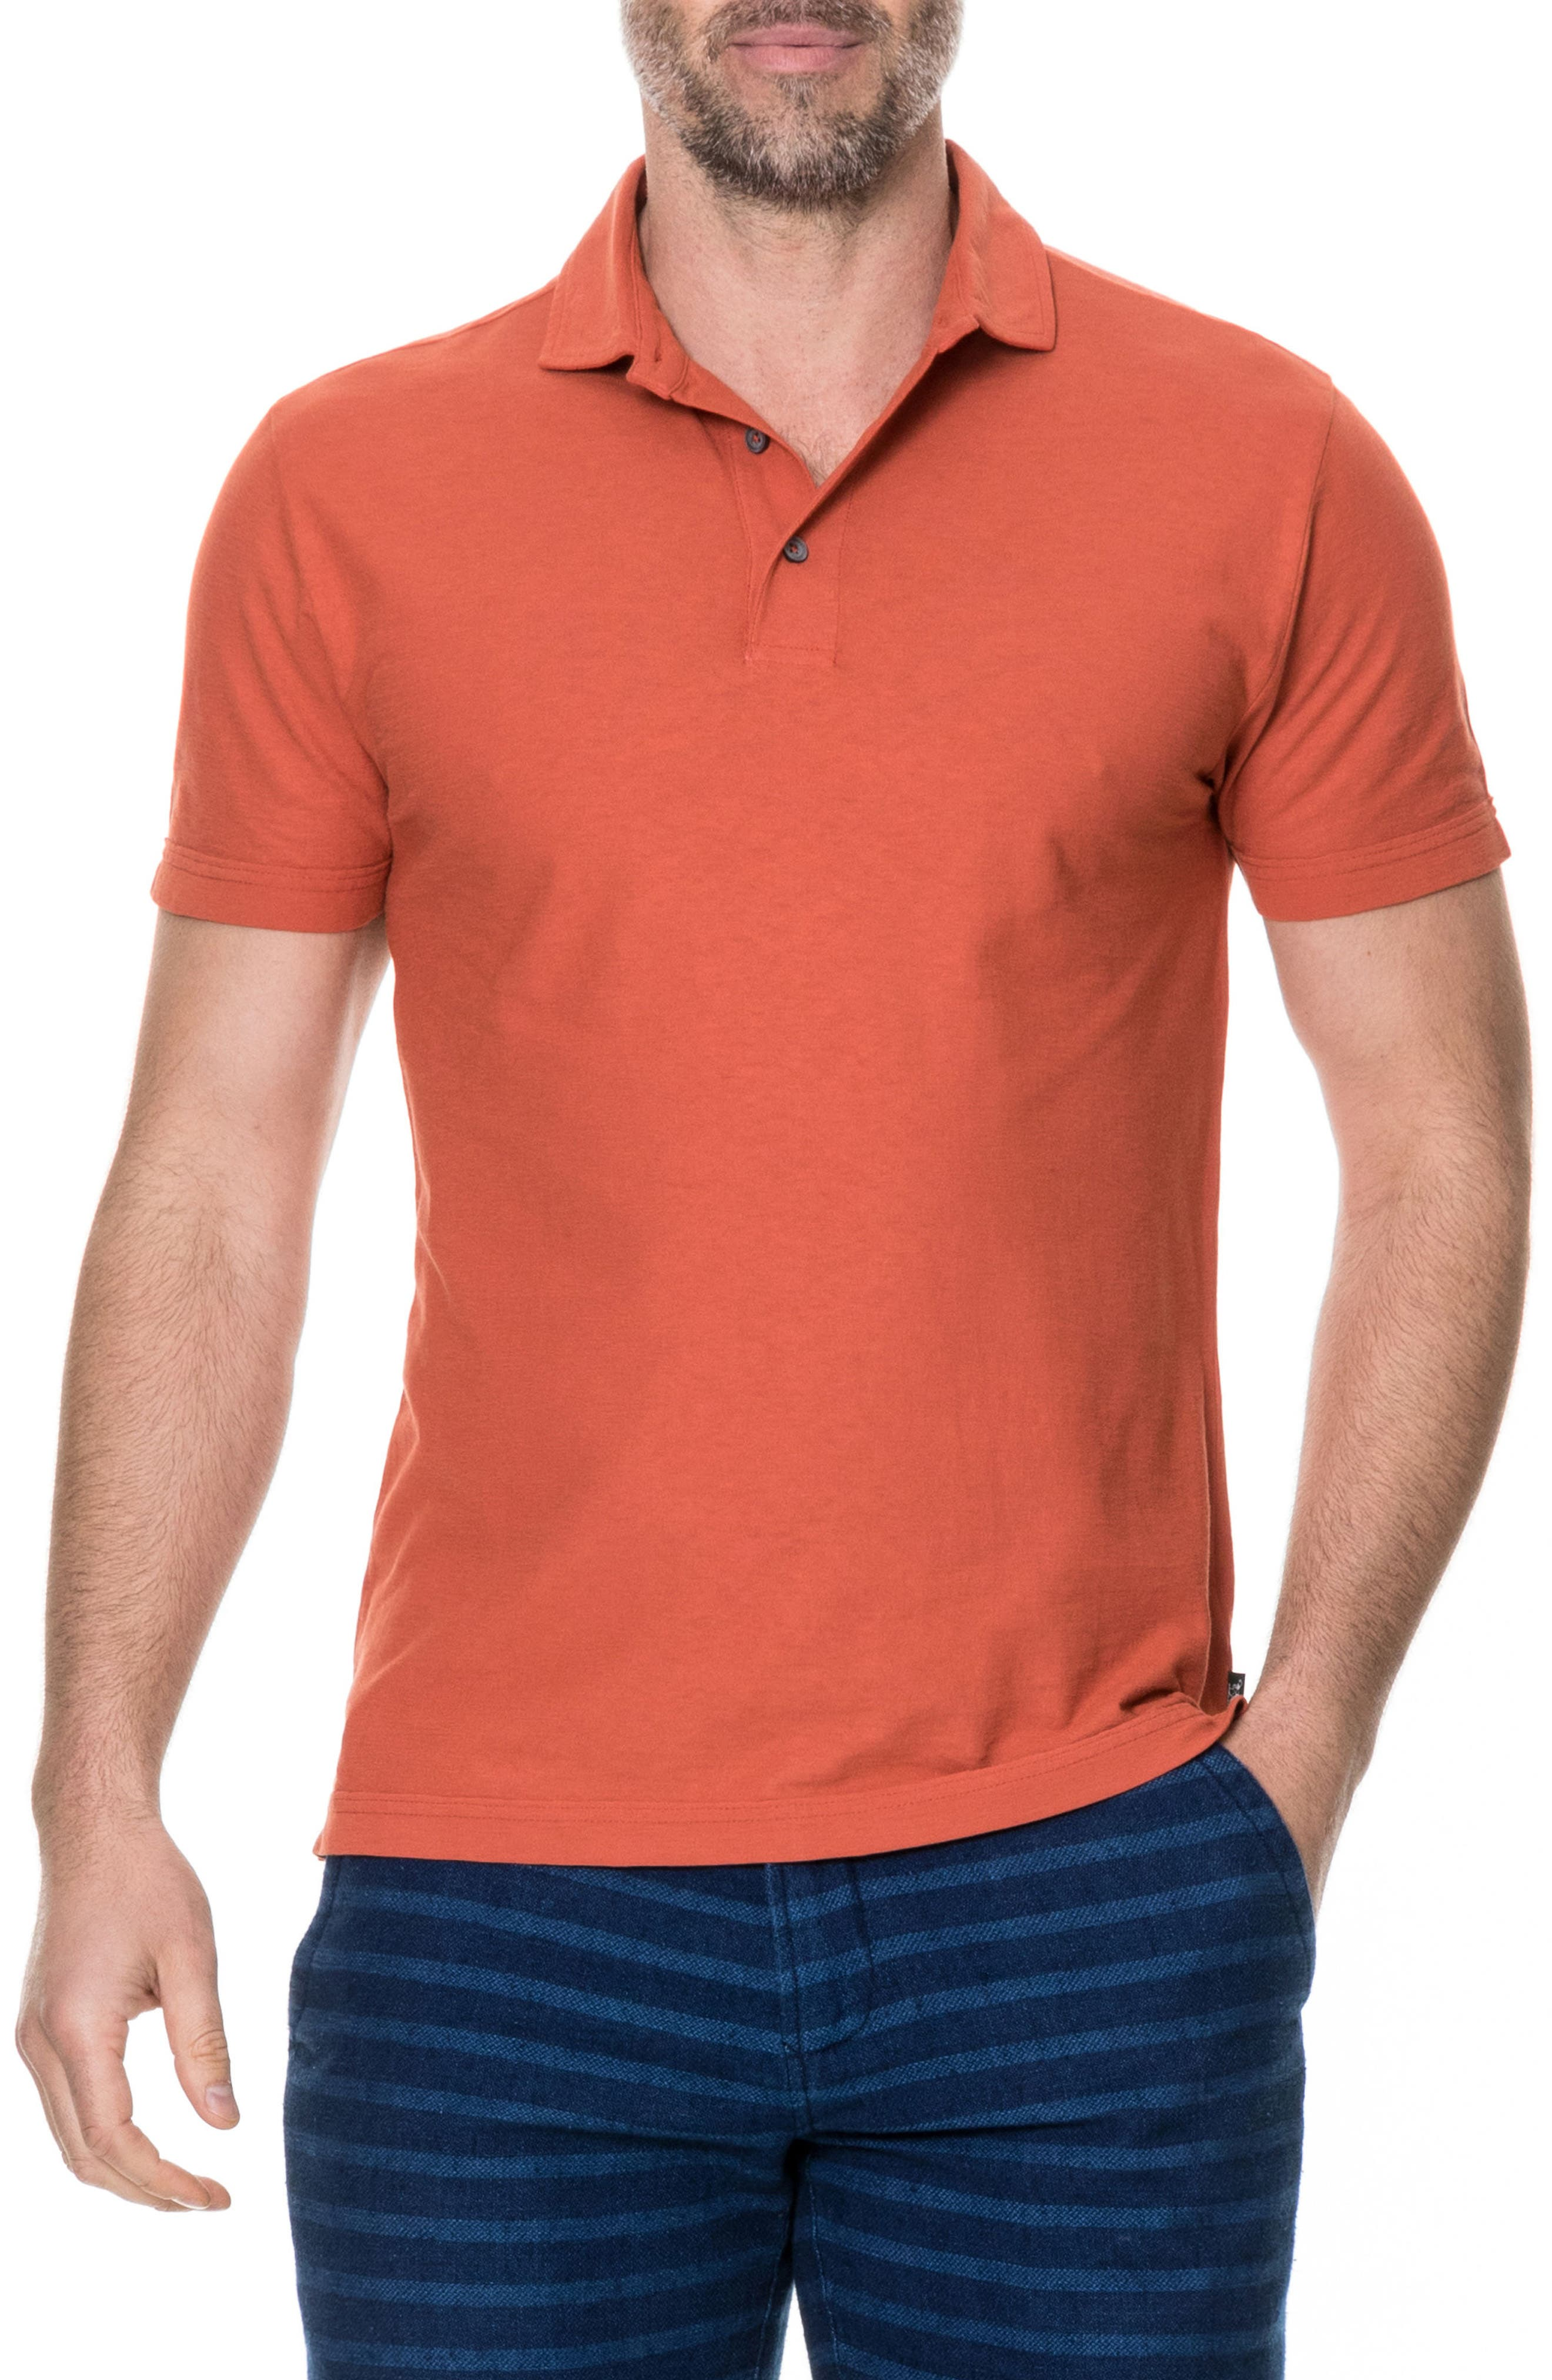 Wilsons Bay Sports Fit Polo,                             Main thumbnail 1, color,                             RED OCHRE